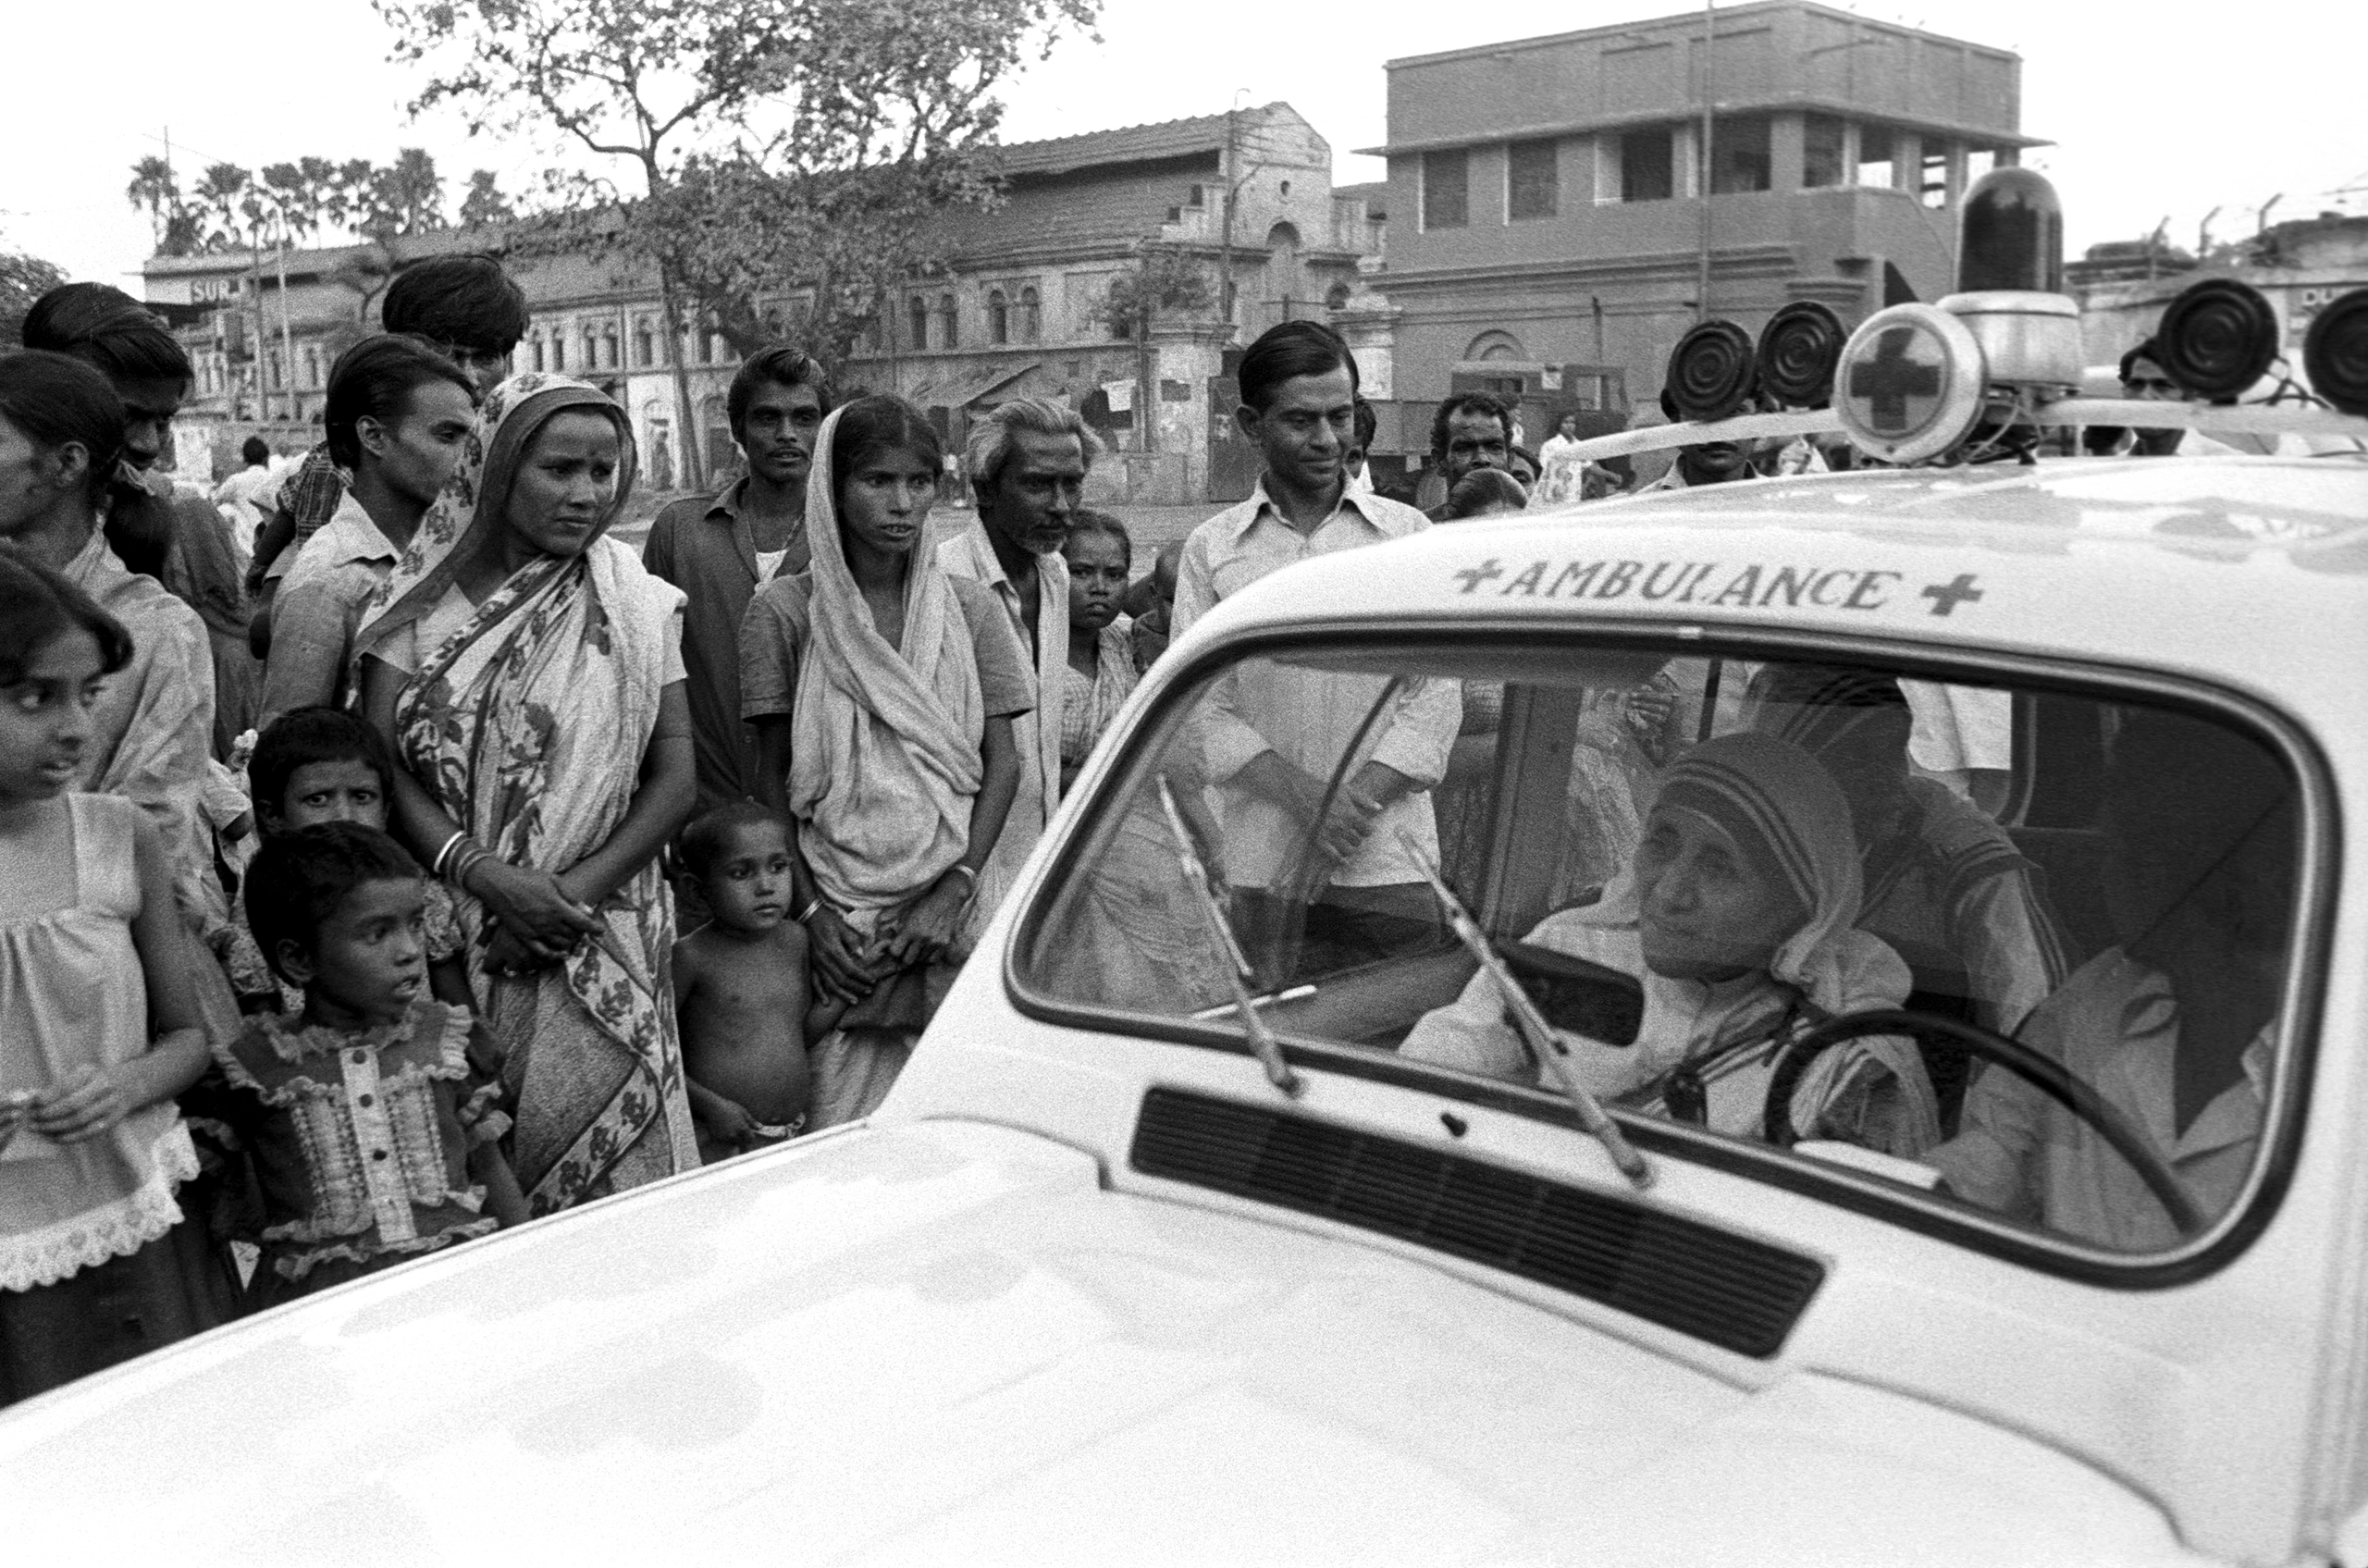 Mother Teresa rides in an ambulance alongside a group of impoverished people in Calcutta, India, in October 1979.